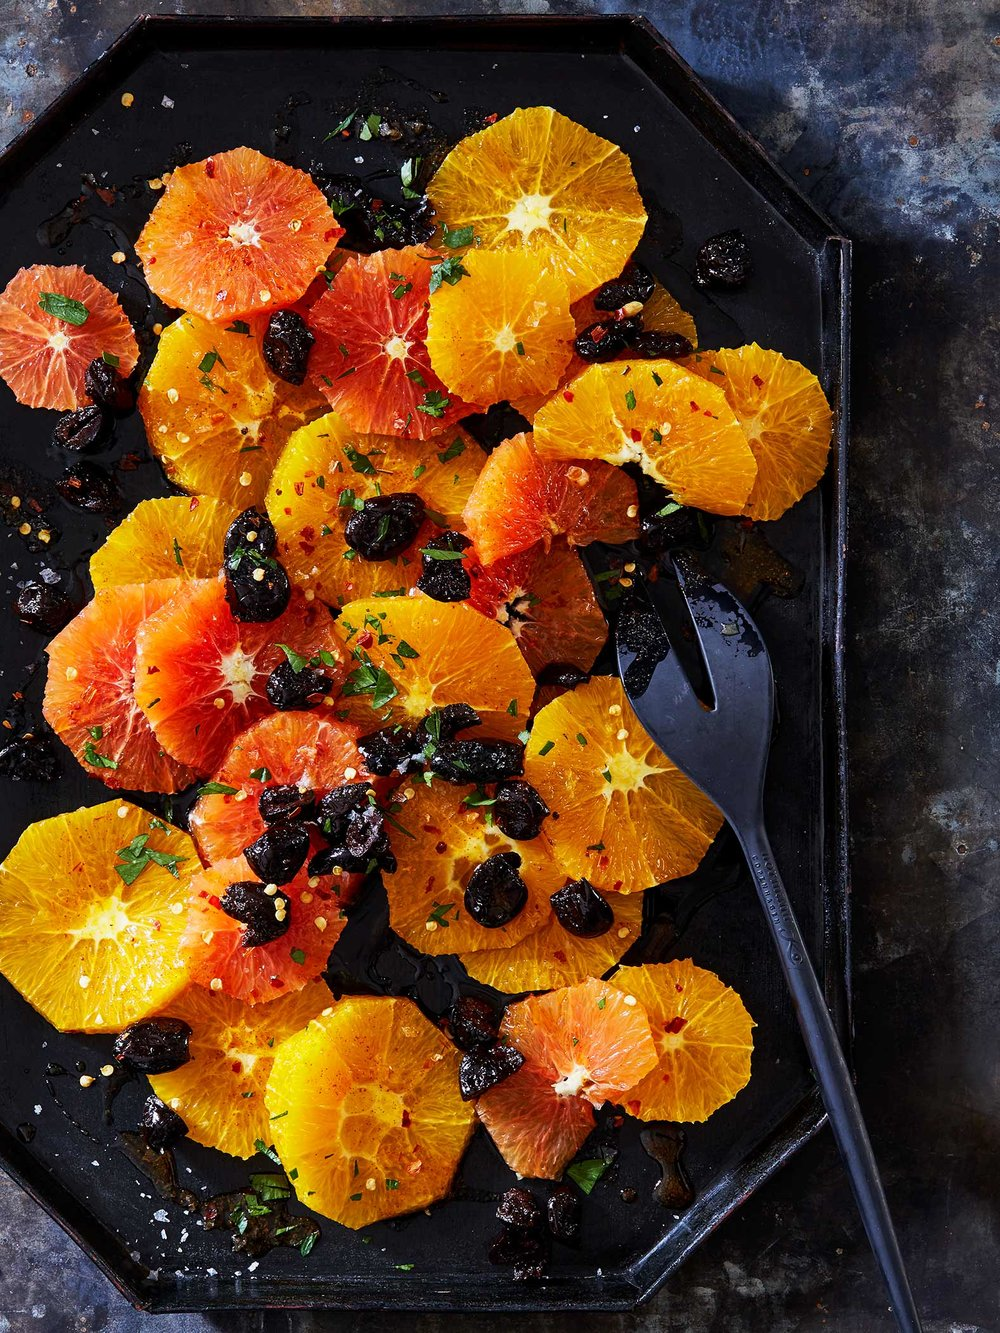 LBOJA_MOROCCAN_ORANGE_BLACK_OLIVE_SALAD_V2.jpg